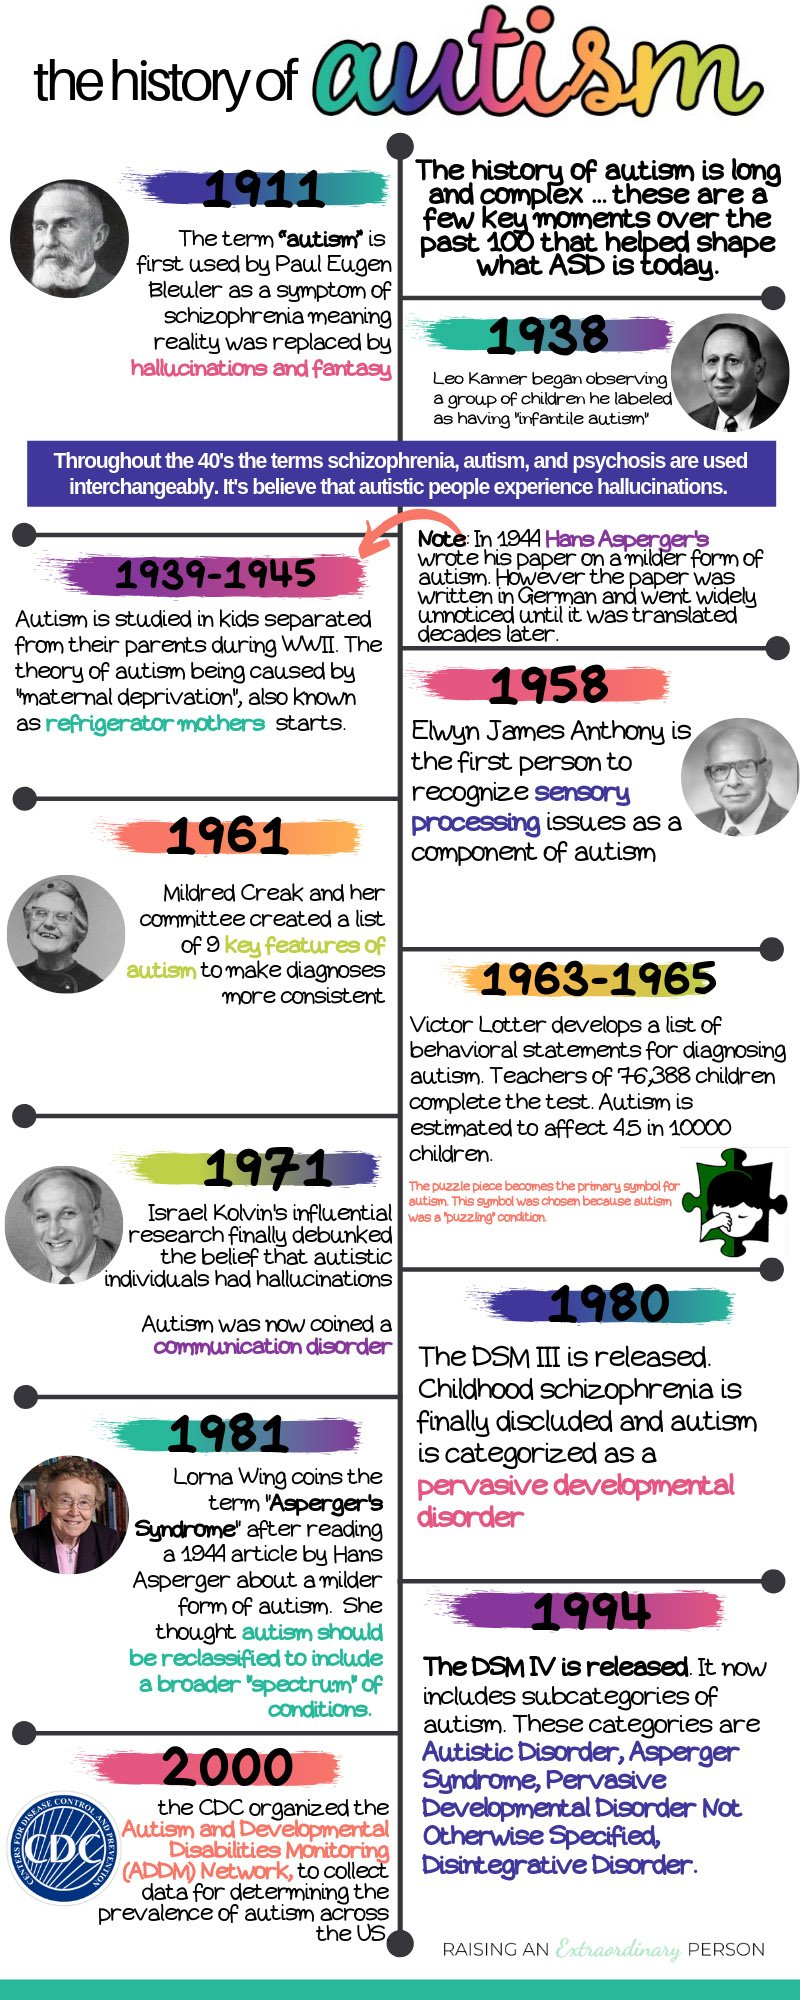 the history of autism - infographic timeline of autism